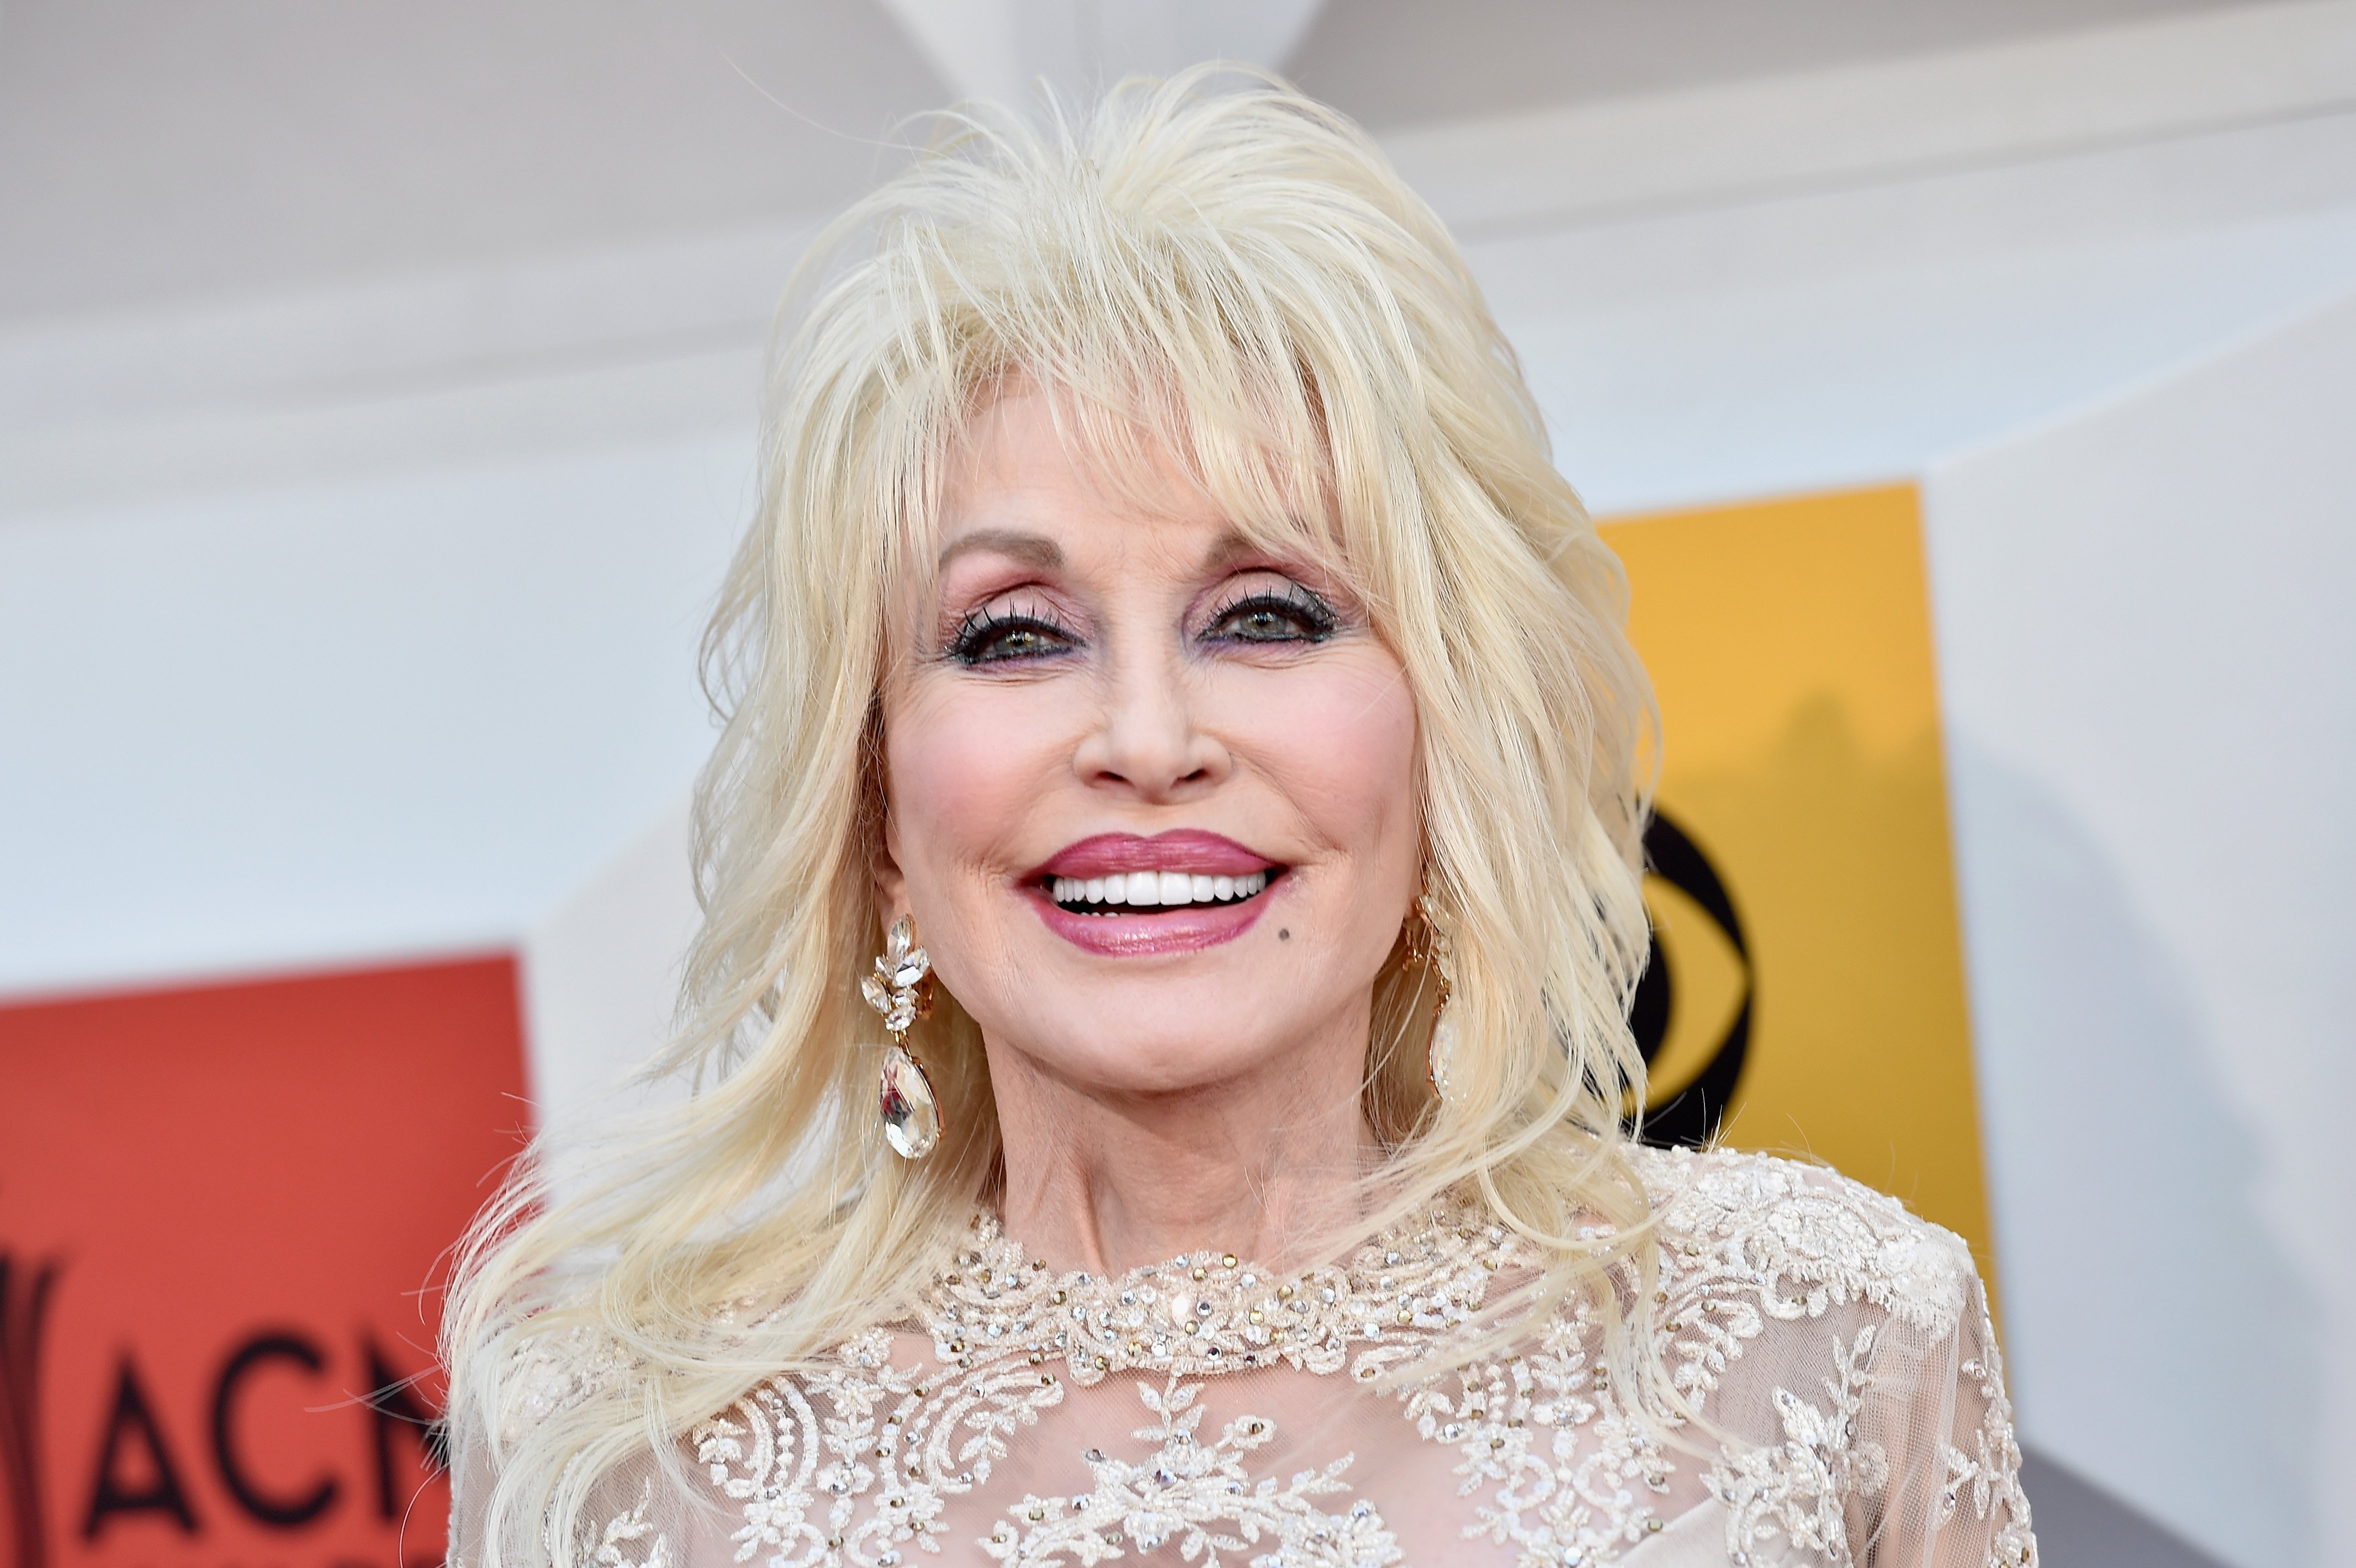 Dolly Parton à la 51e Academy of Country Music Awards au MGM Grand Garden Arena | Photo : Getty Images